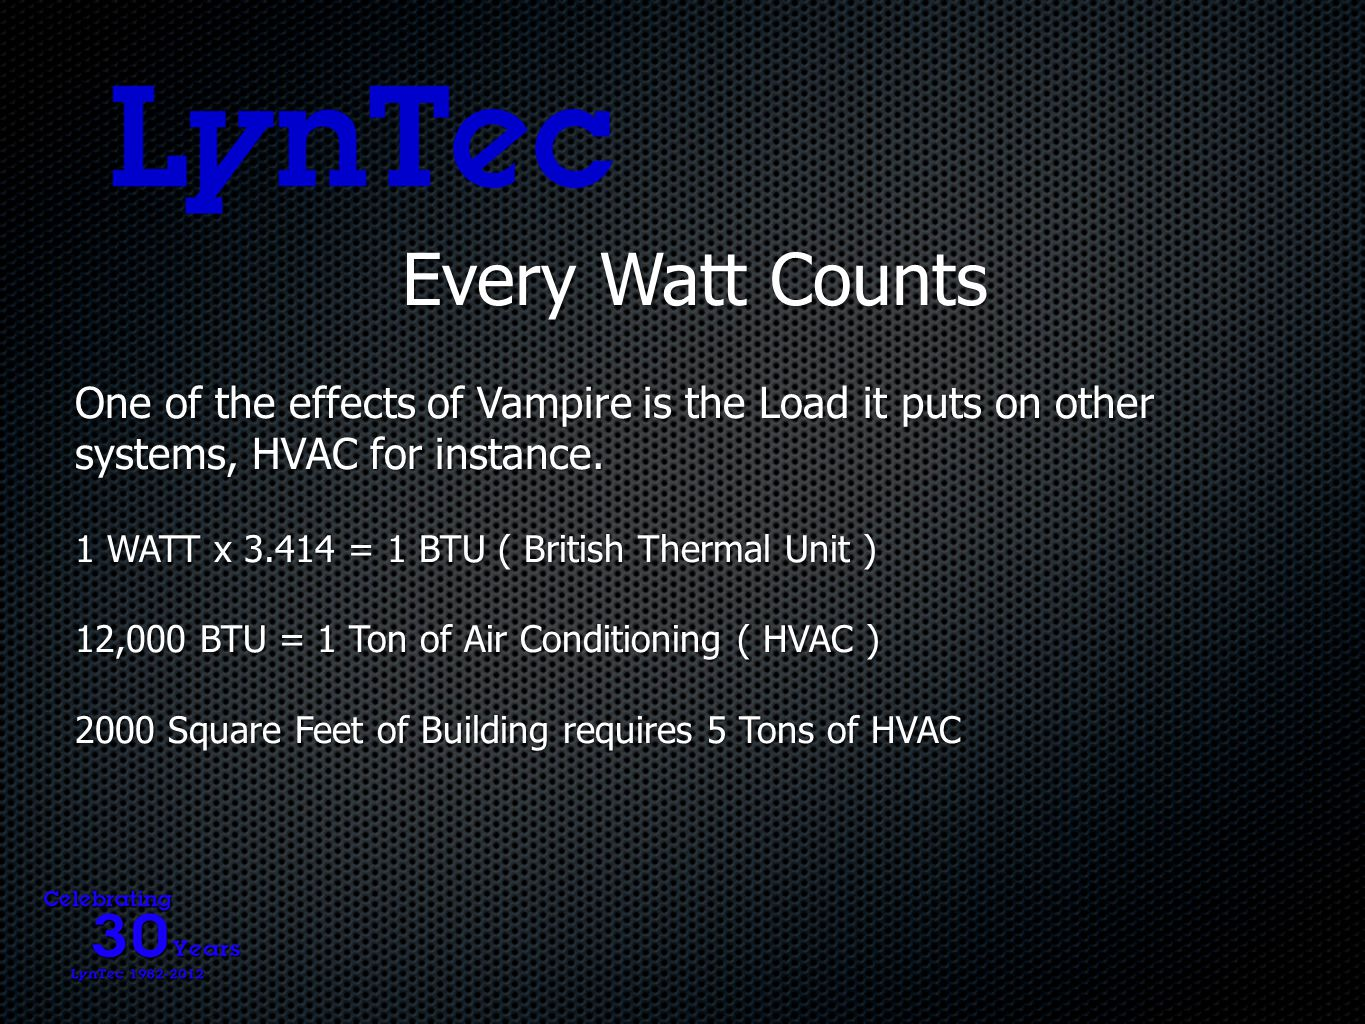 Every Watt Counts One of the effects of Vampire is the Load it puts on other systems, HVAC for instance.